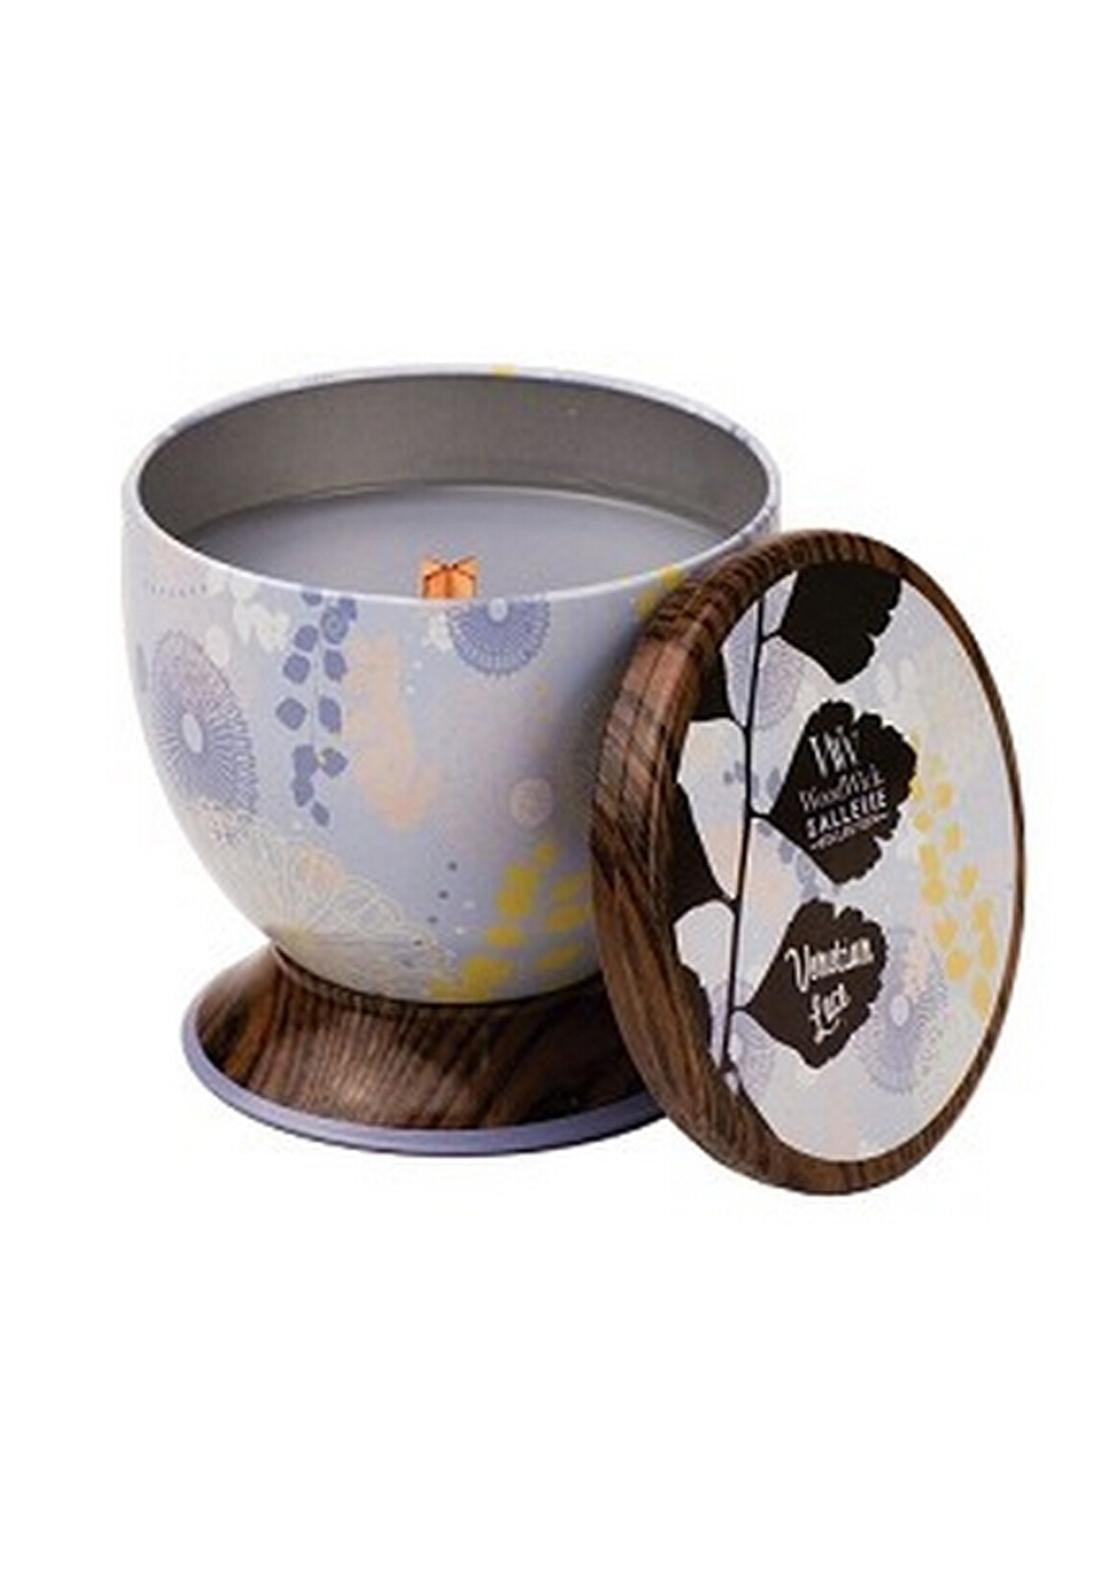 Woodwick Gallerie Collection, Scented Candle, Venetian Lace